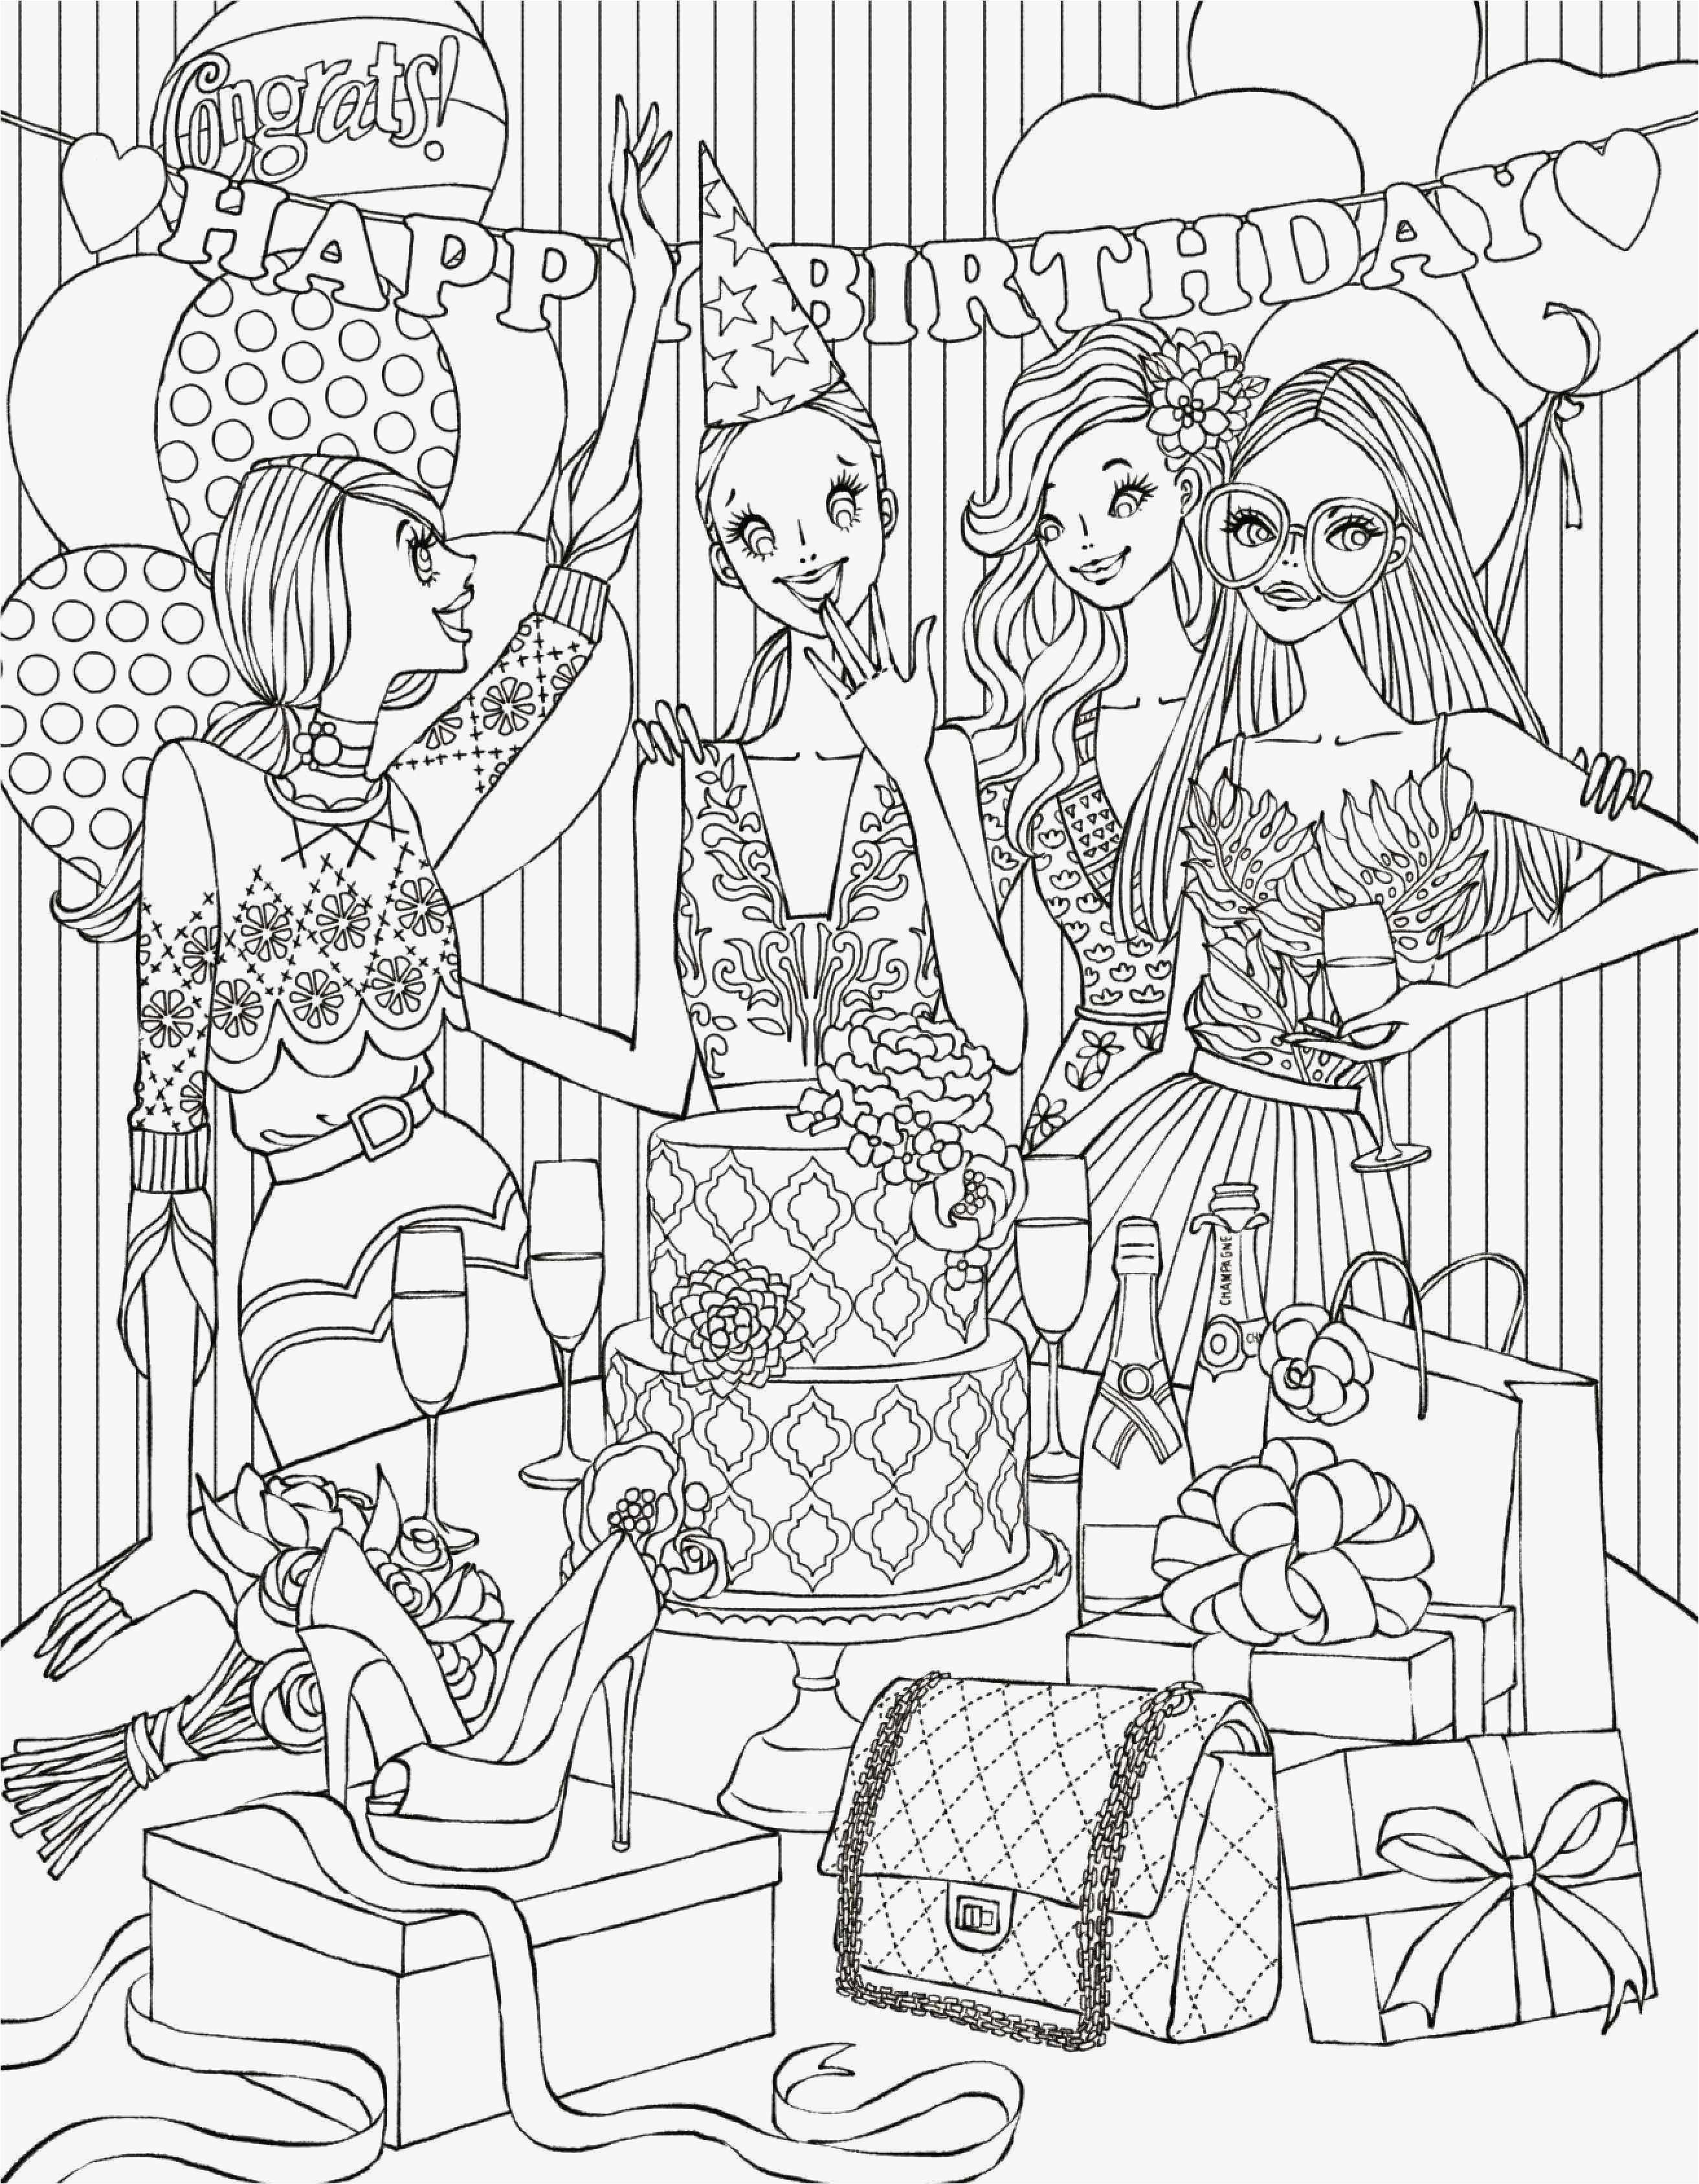 Christmas Coloring Pages On Pinterest With Doc Mcstuffins Colors Example